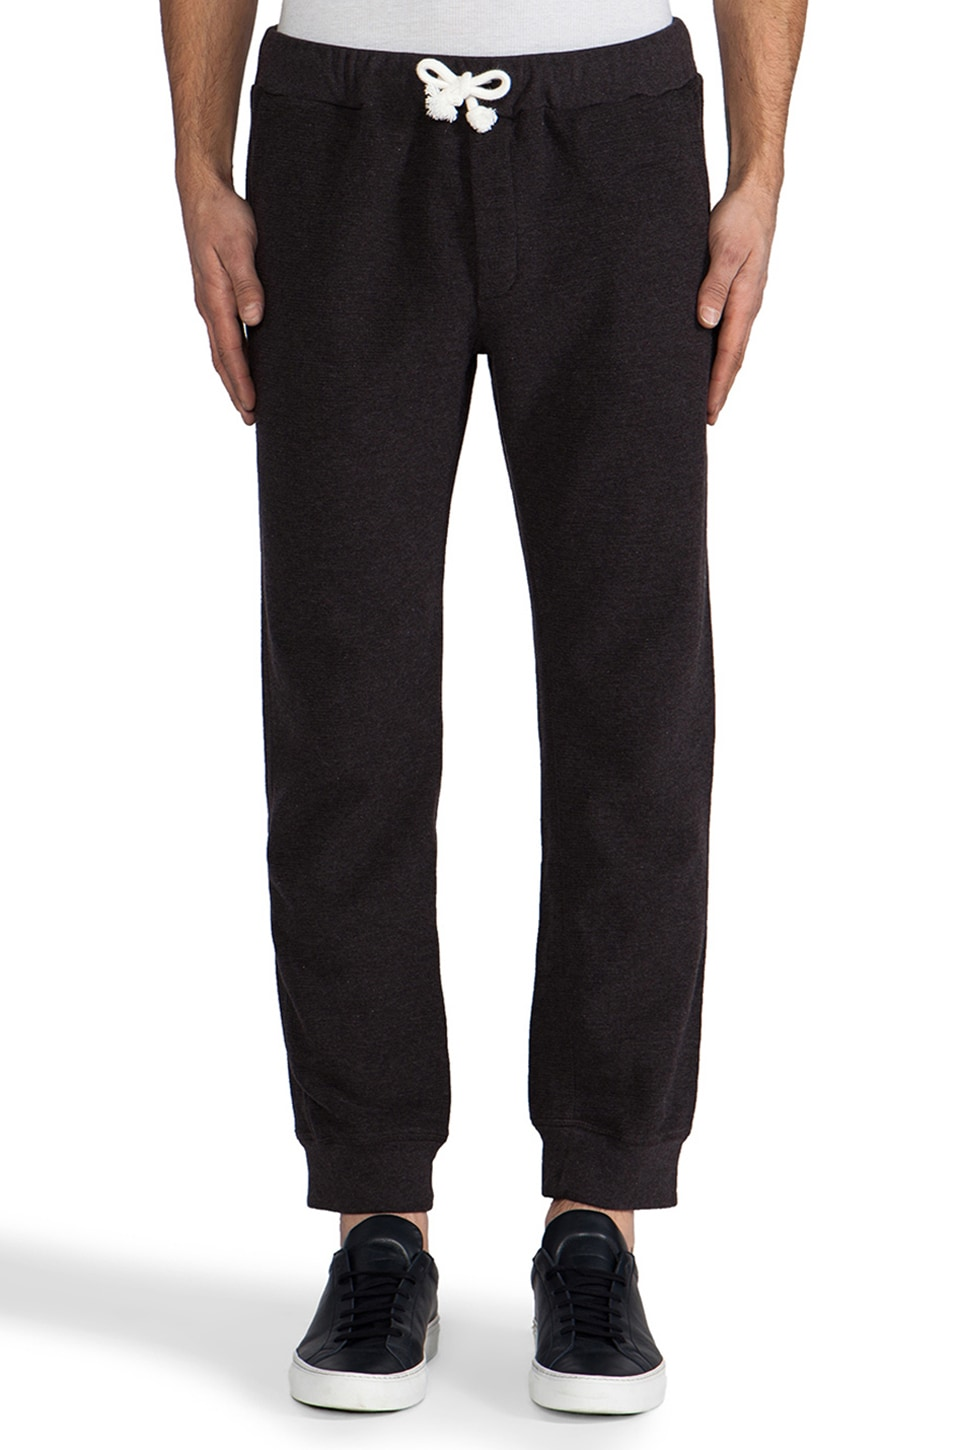 Steven Alan Charles Sweatpant in Charcoal